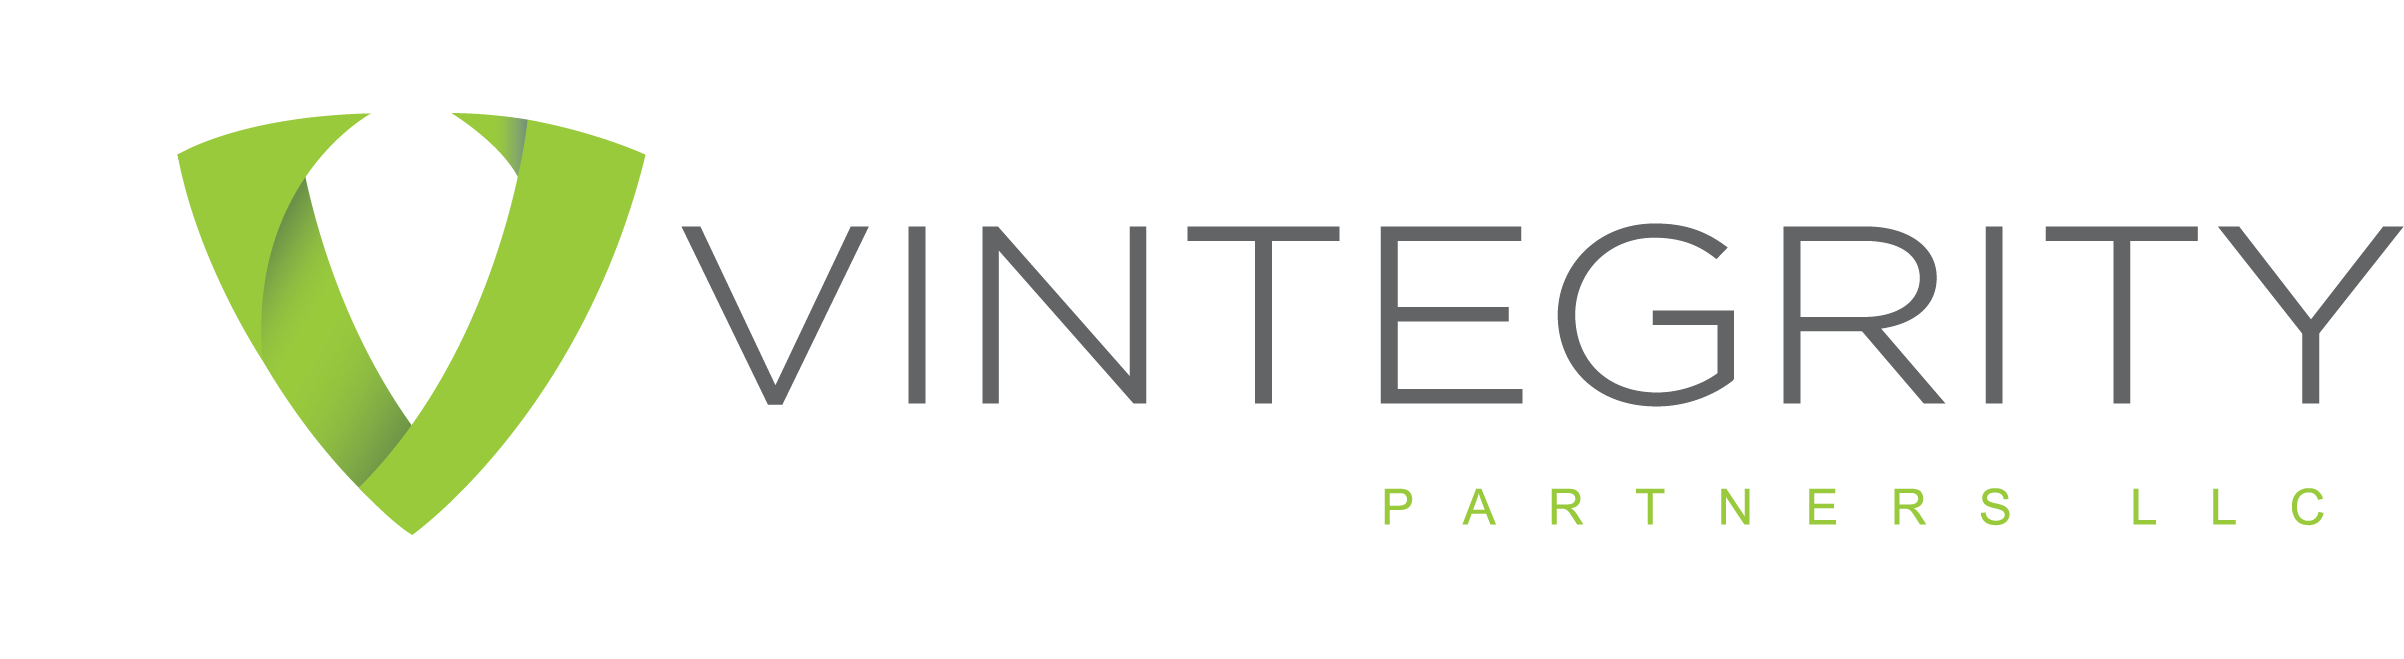 Vintegrity Partners – Workforce Optimization & Management